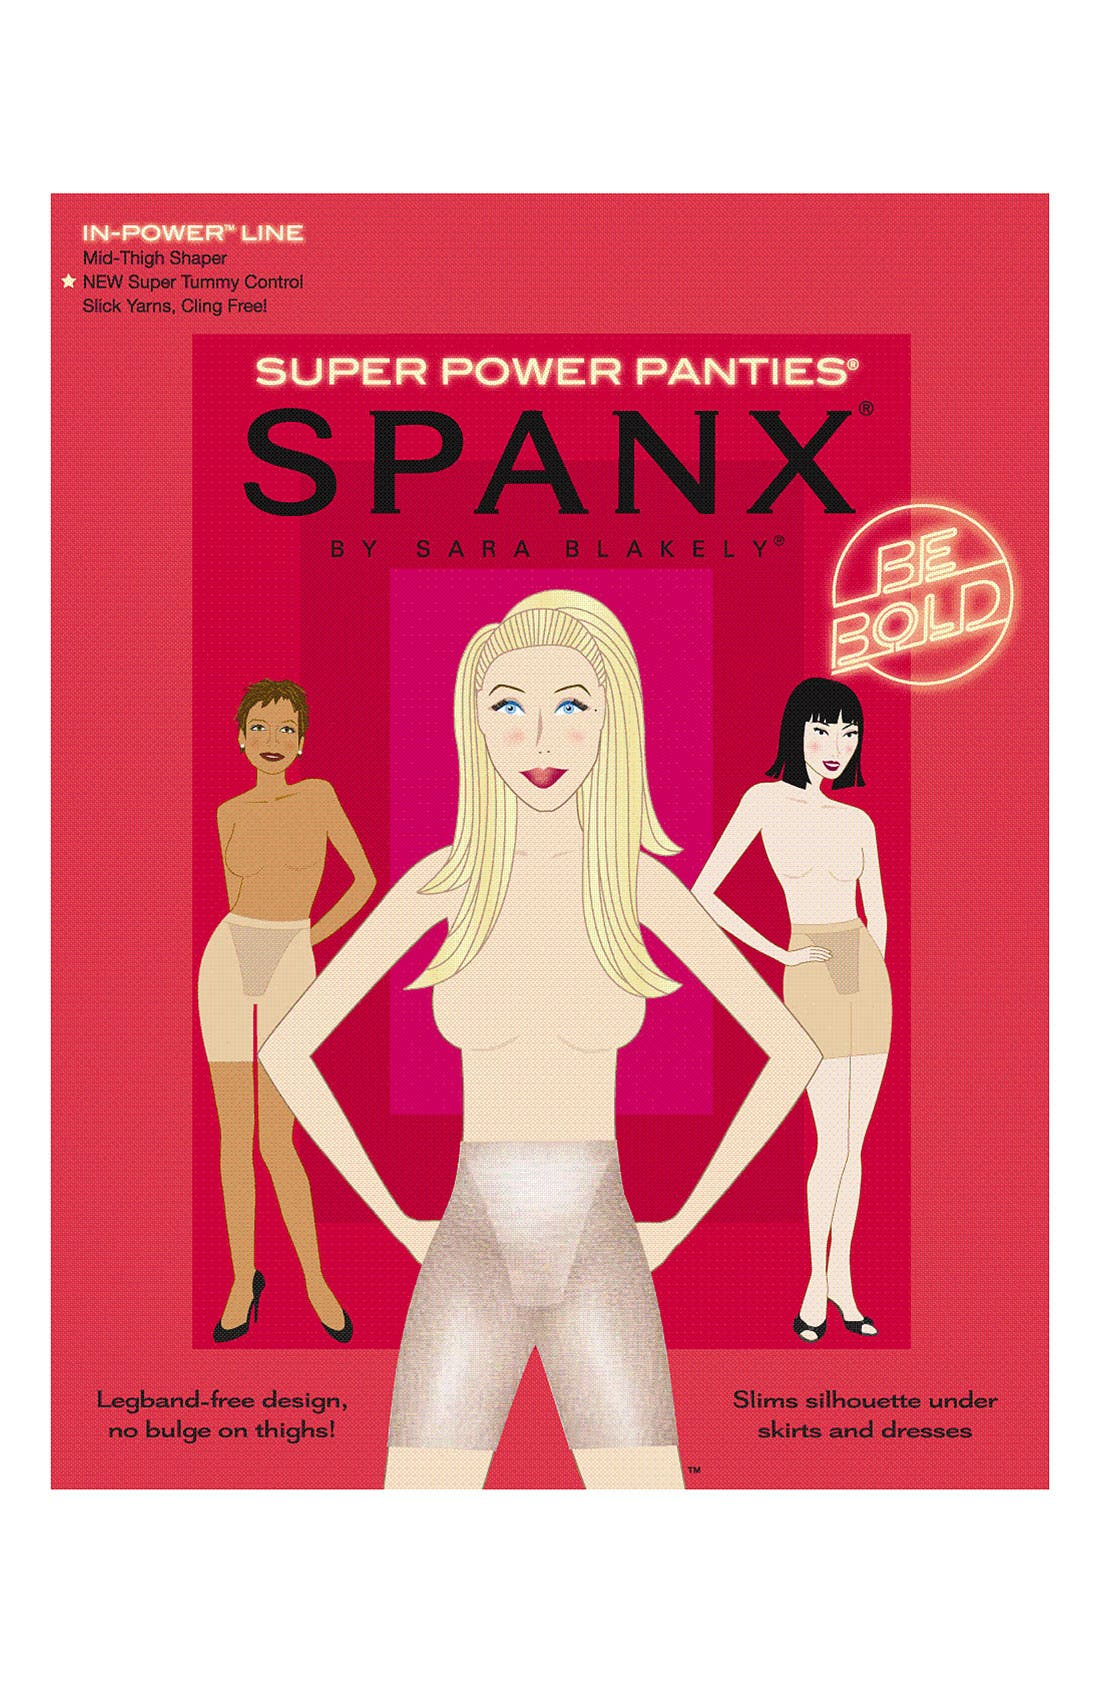 Alternate Image 4  - SPANX® 'In-Power Line' Super Power Panties Mid Thigh Shaper (Regular & Plus Size)